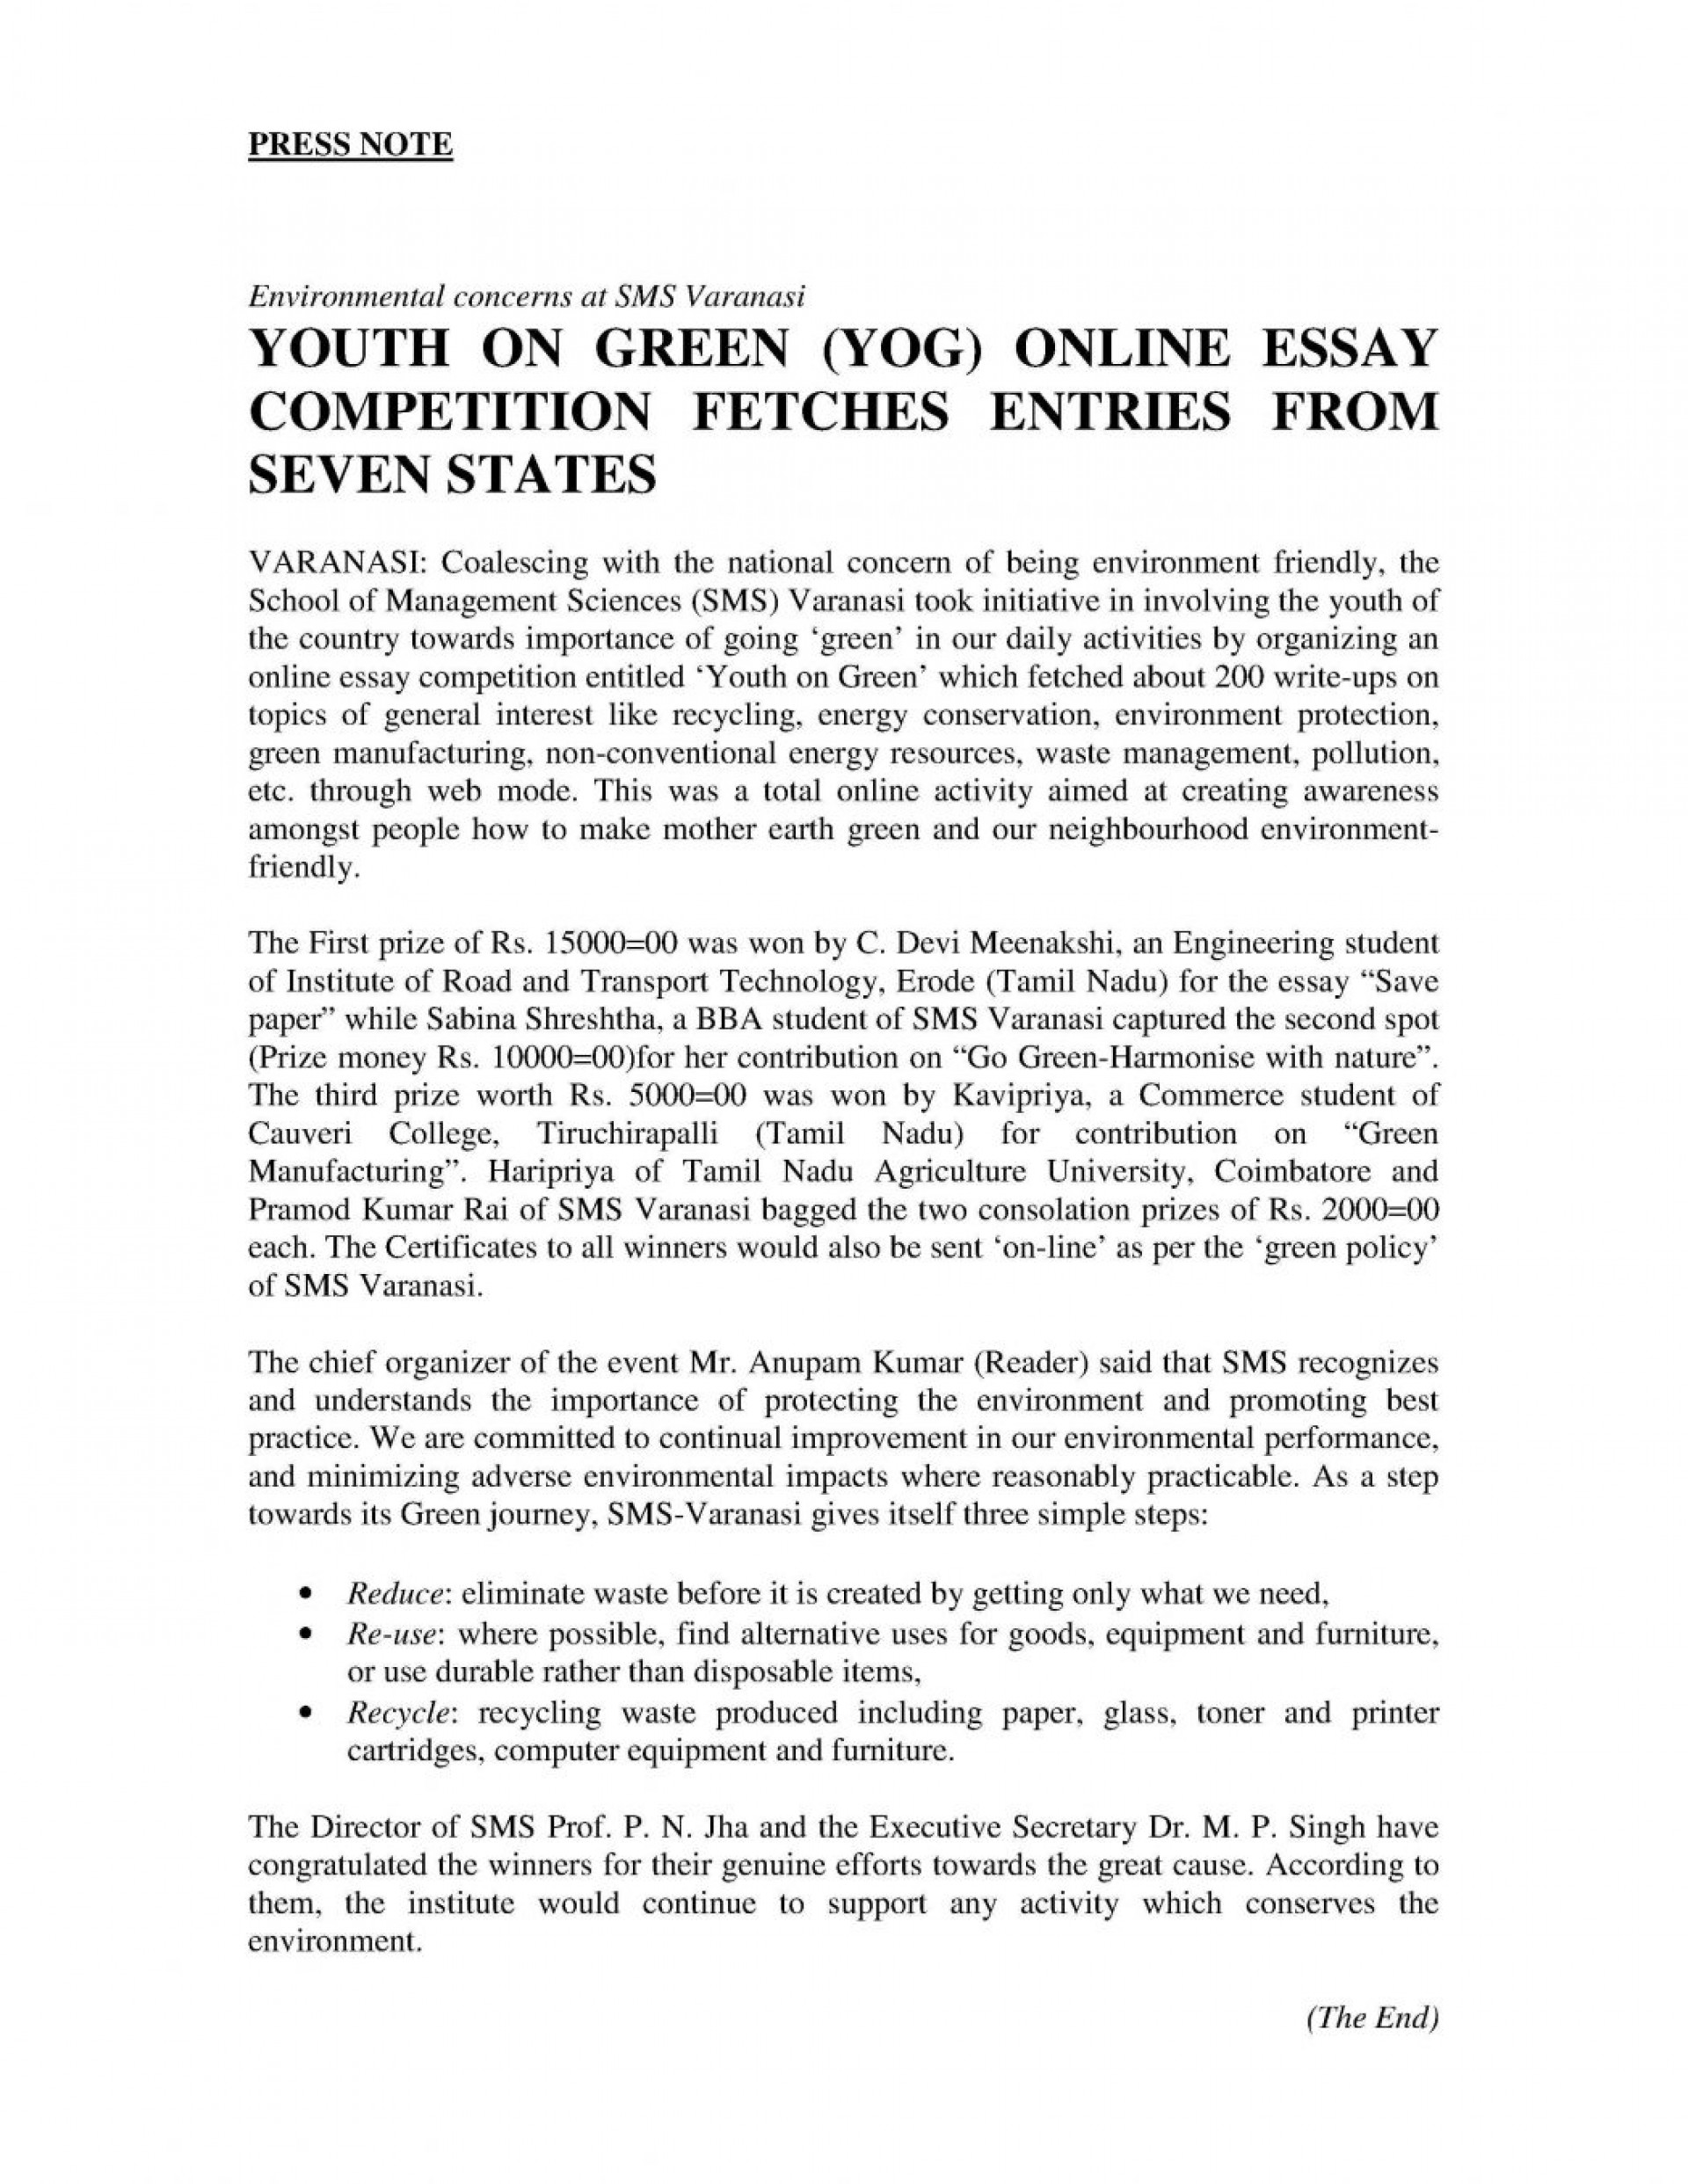 020 Best Essays For College Essay On Good Habits How Tot Application Online Yog Press Re About Yourself Examples Your Background Failure Prompt Off Hook 1048x1356 Example Amazing To Start An Can I A Book Observation With Quote 1920